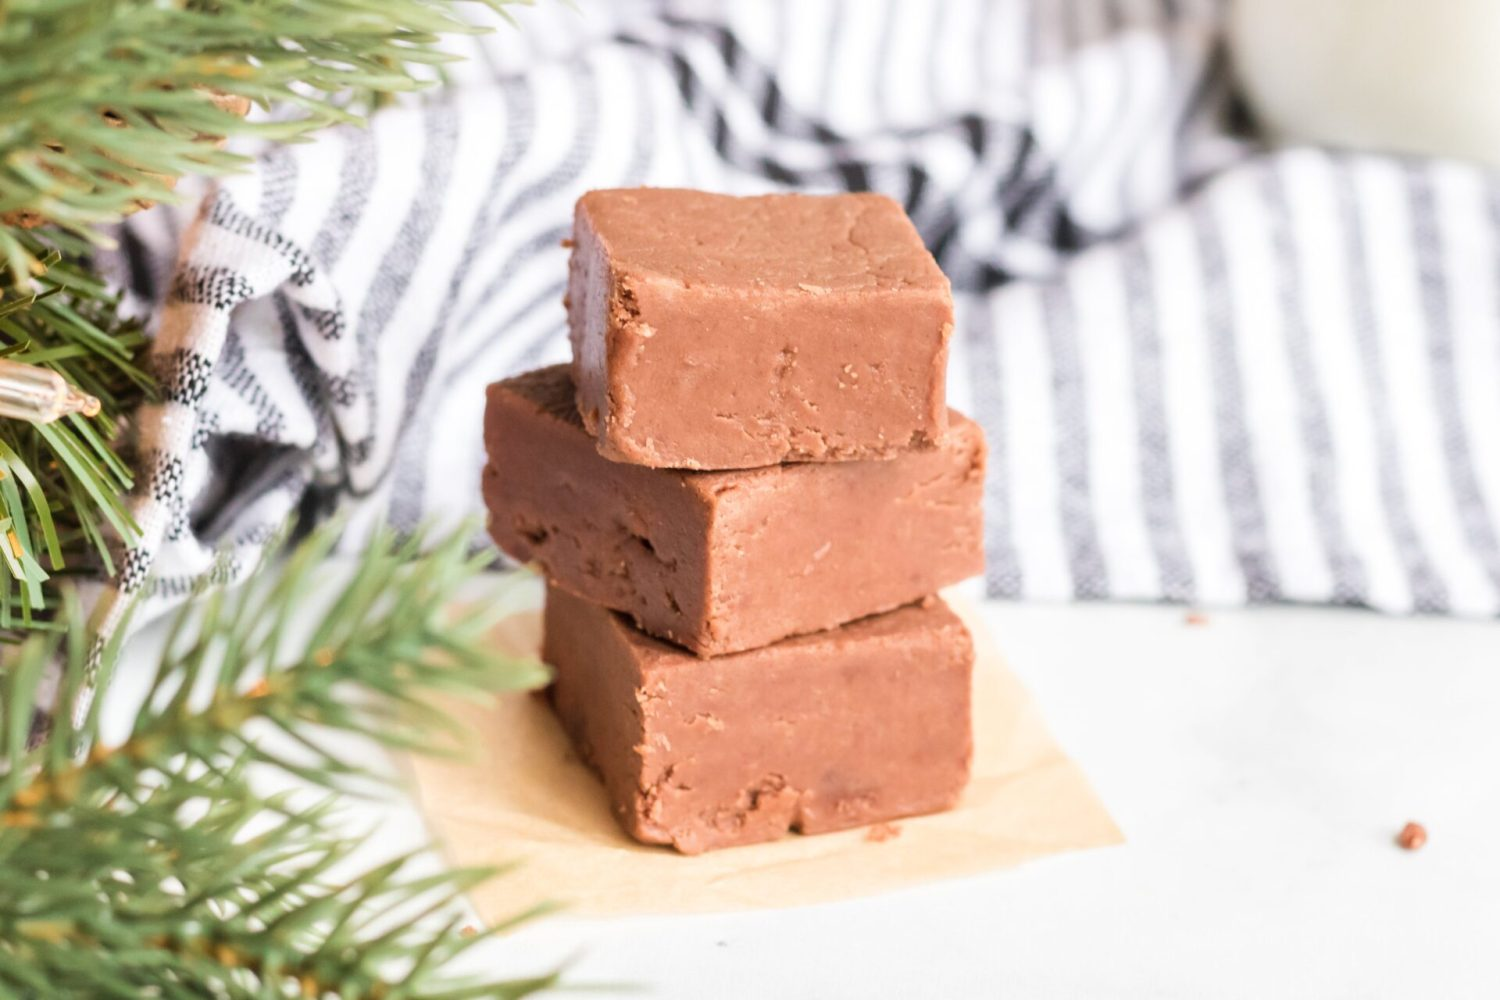 The classic fantasy fudge is super simple to make and tastes delicious and makes perfect gifts to give friends and neighbors around the holidays!